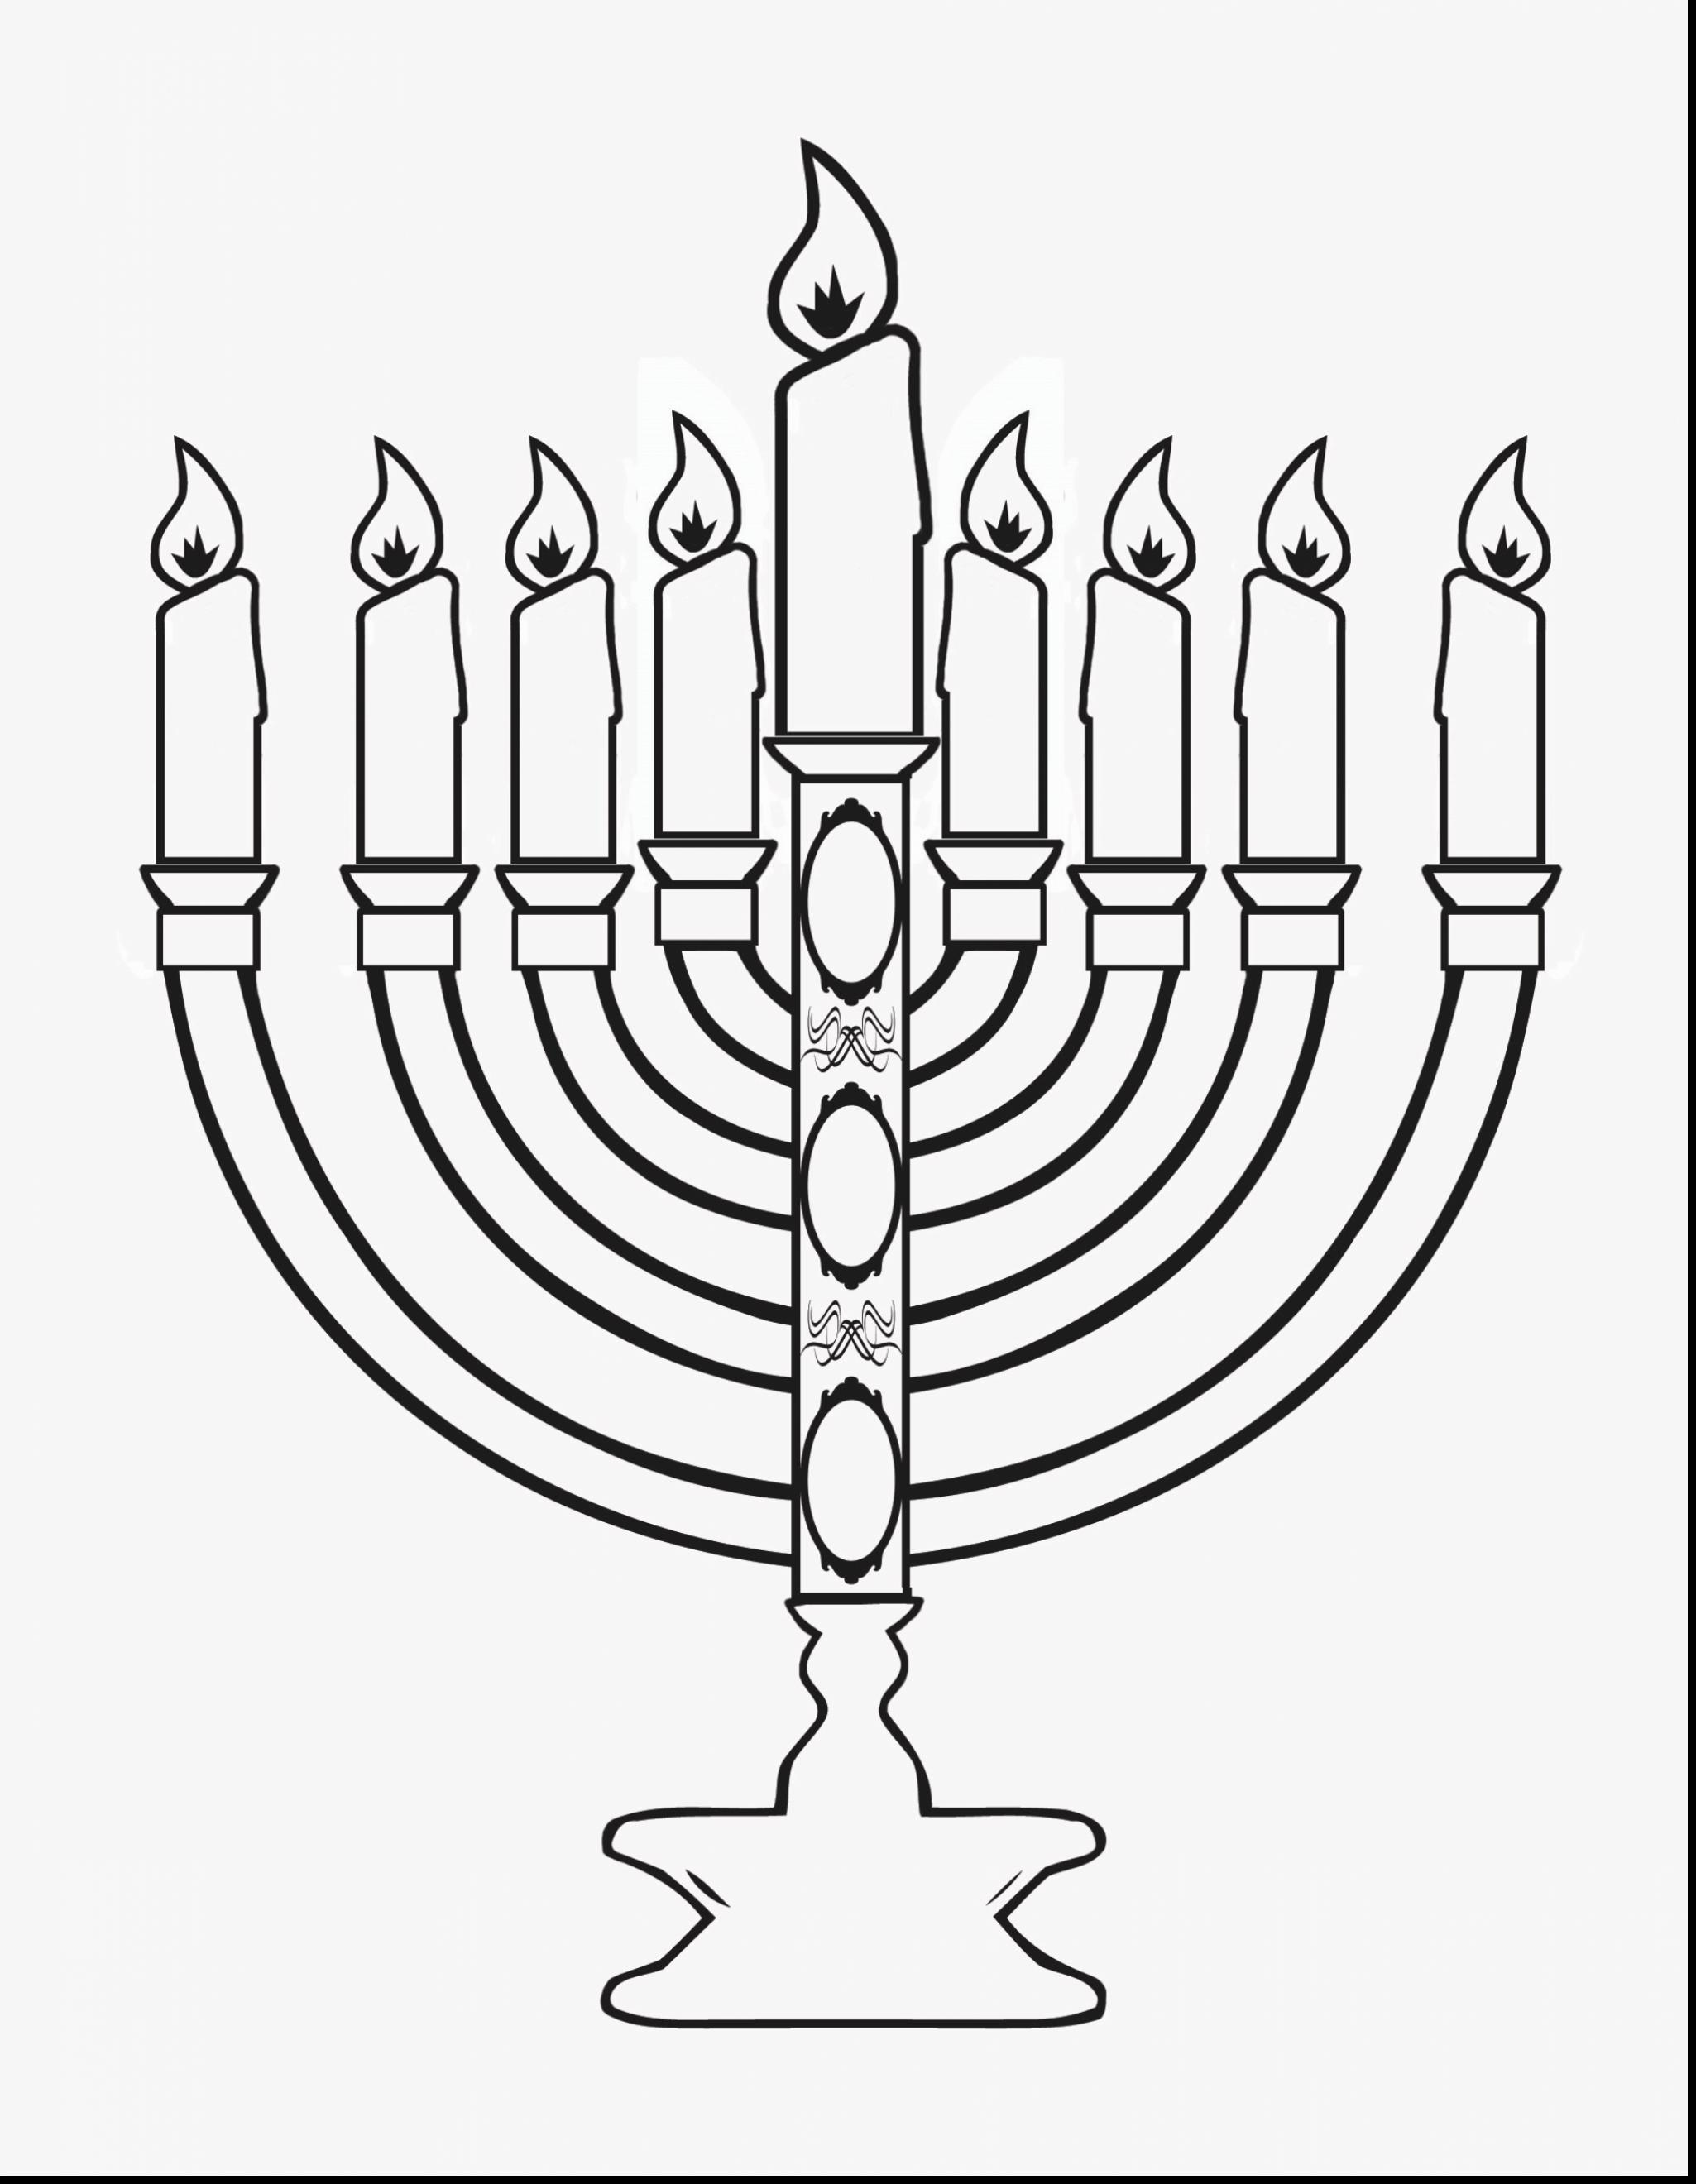 menorah coloring page 8 of the best most artful hanukkah coloring pages menorah coloring page